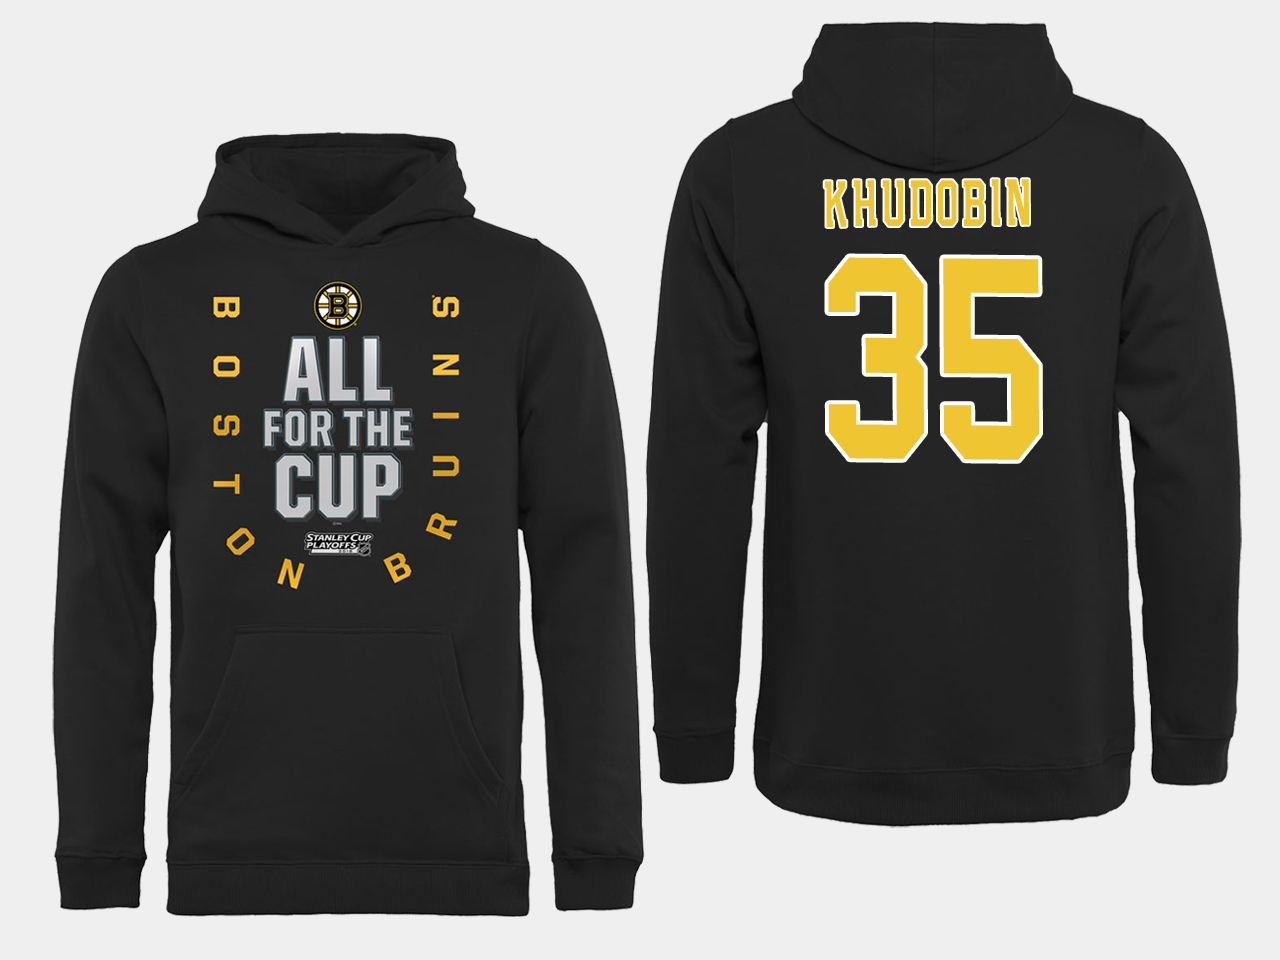 NHL Men Boston Bruins 35 Khudobin Black All for the Cup Hoodie